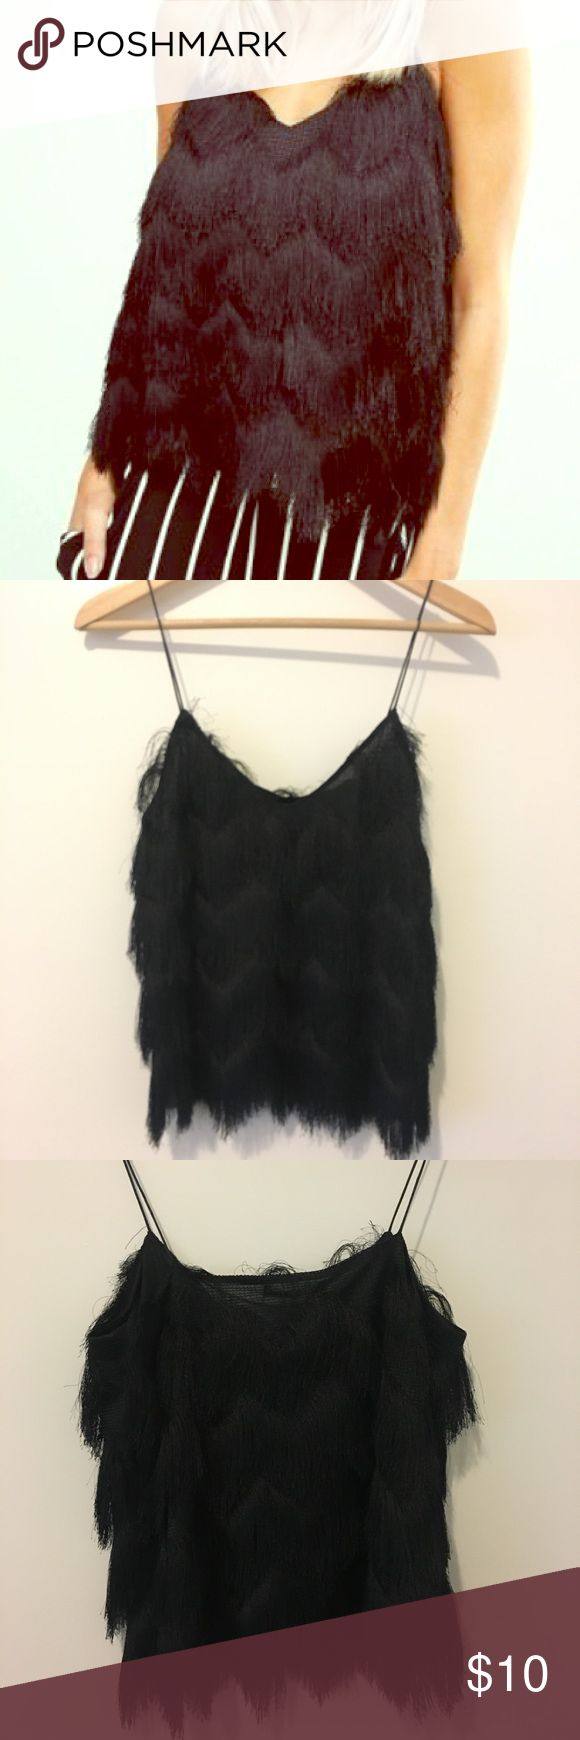 Bershka fringe cami size S Never been worn brand new tags still attached Bershka Tops Camisoles